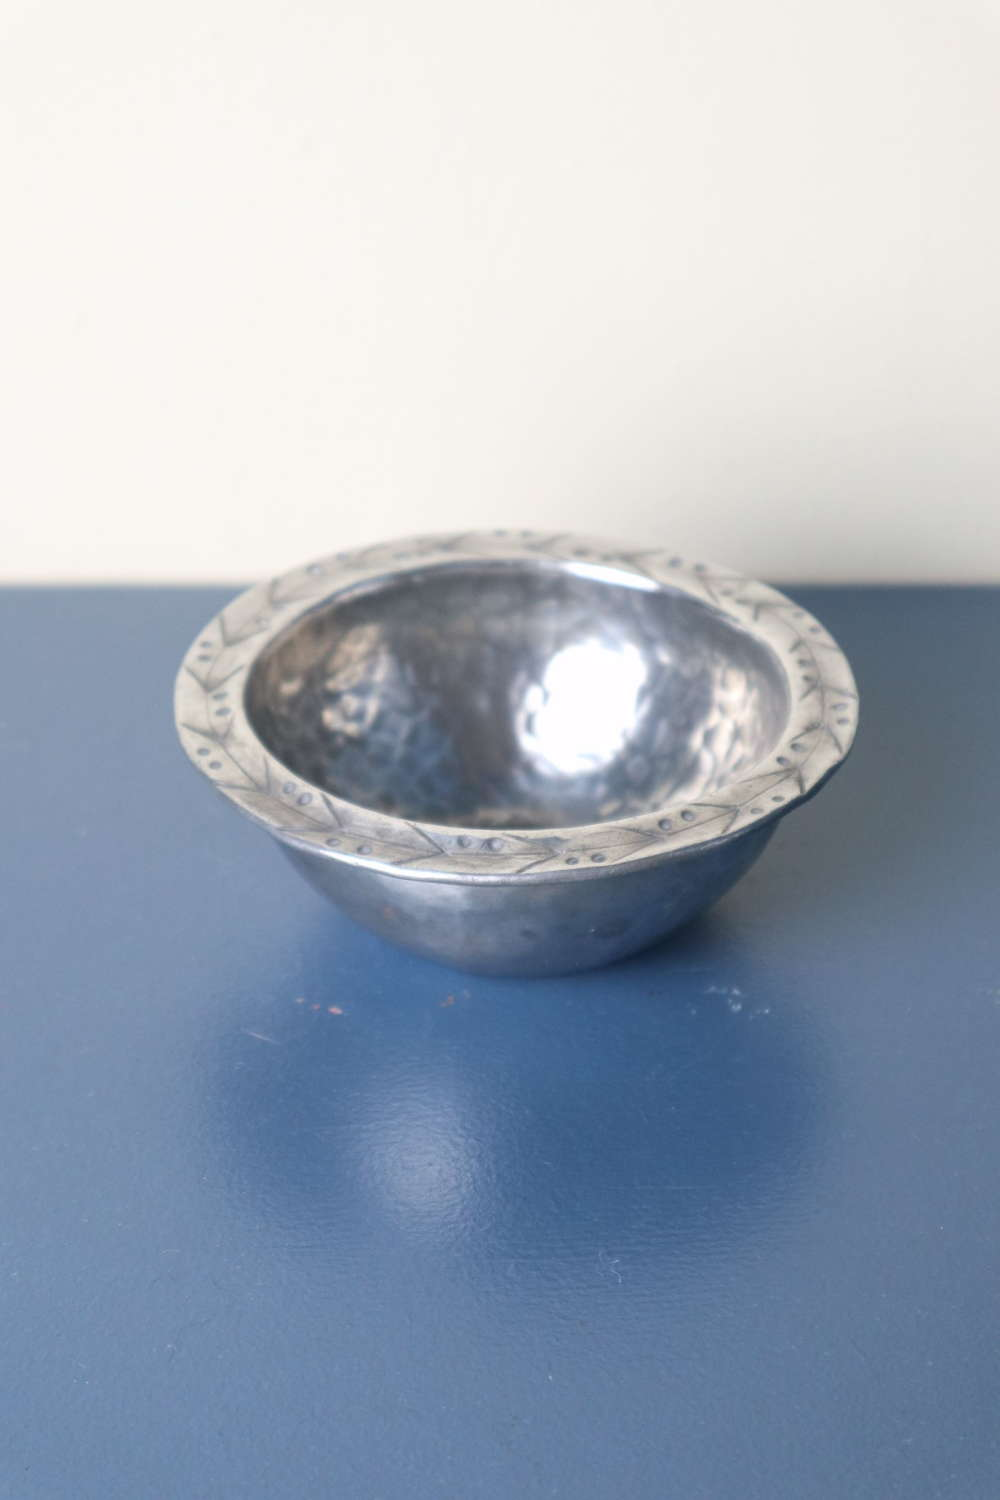 Arts & Crafts Hugh Wallis hammered pewter dished bowl c.1900-1910.